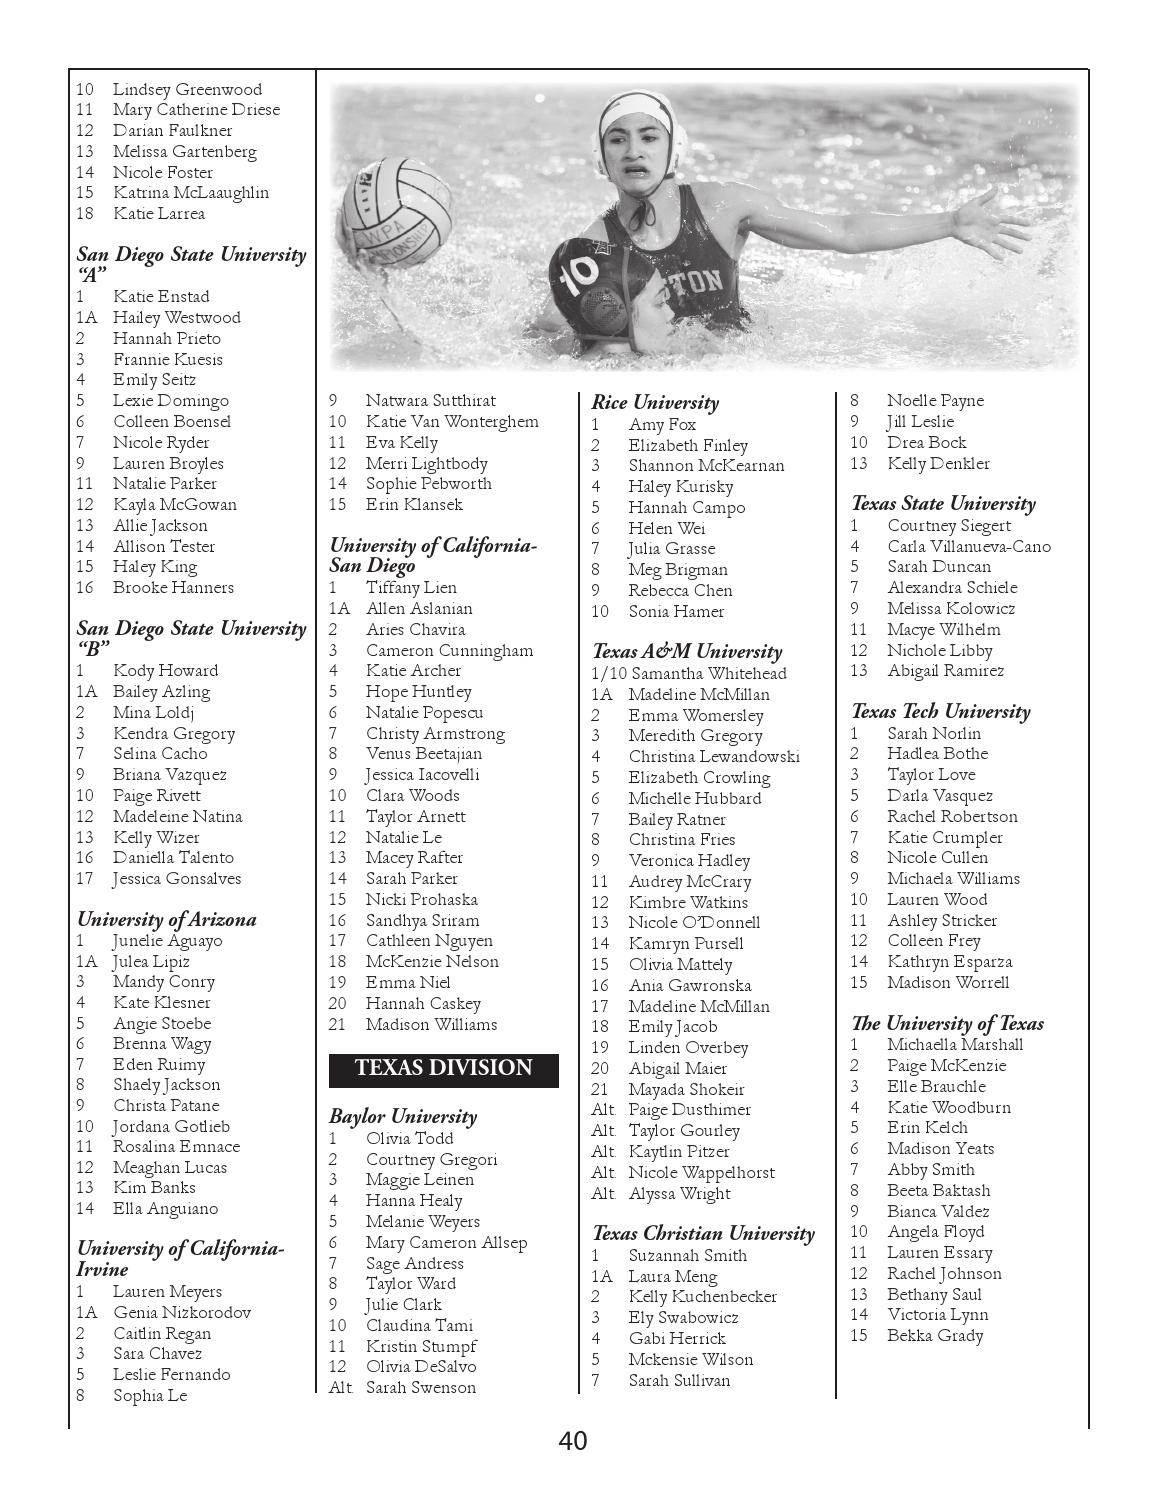 2016 Collegiate Water Polo Association Women's Guide by